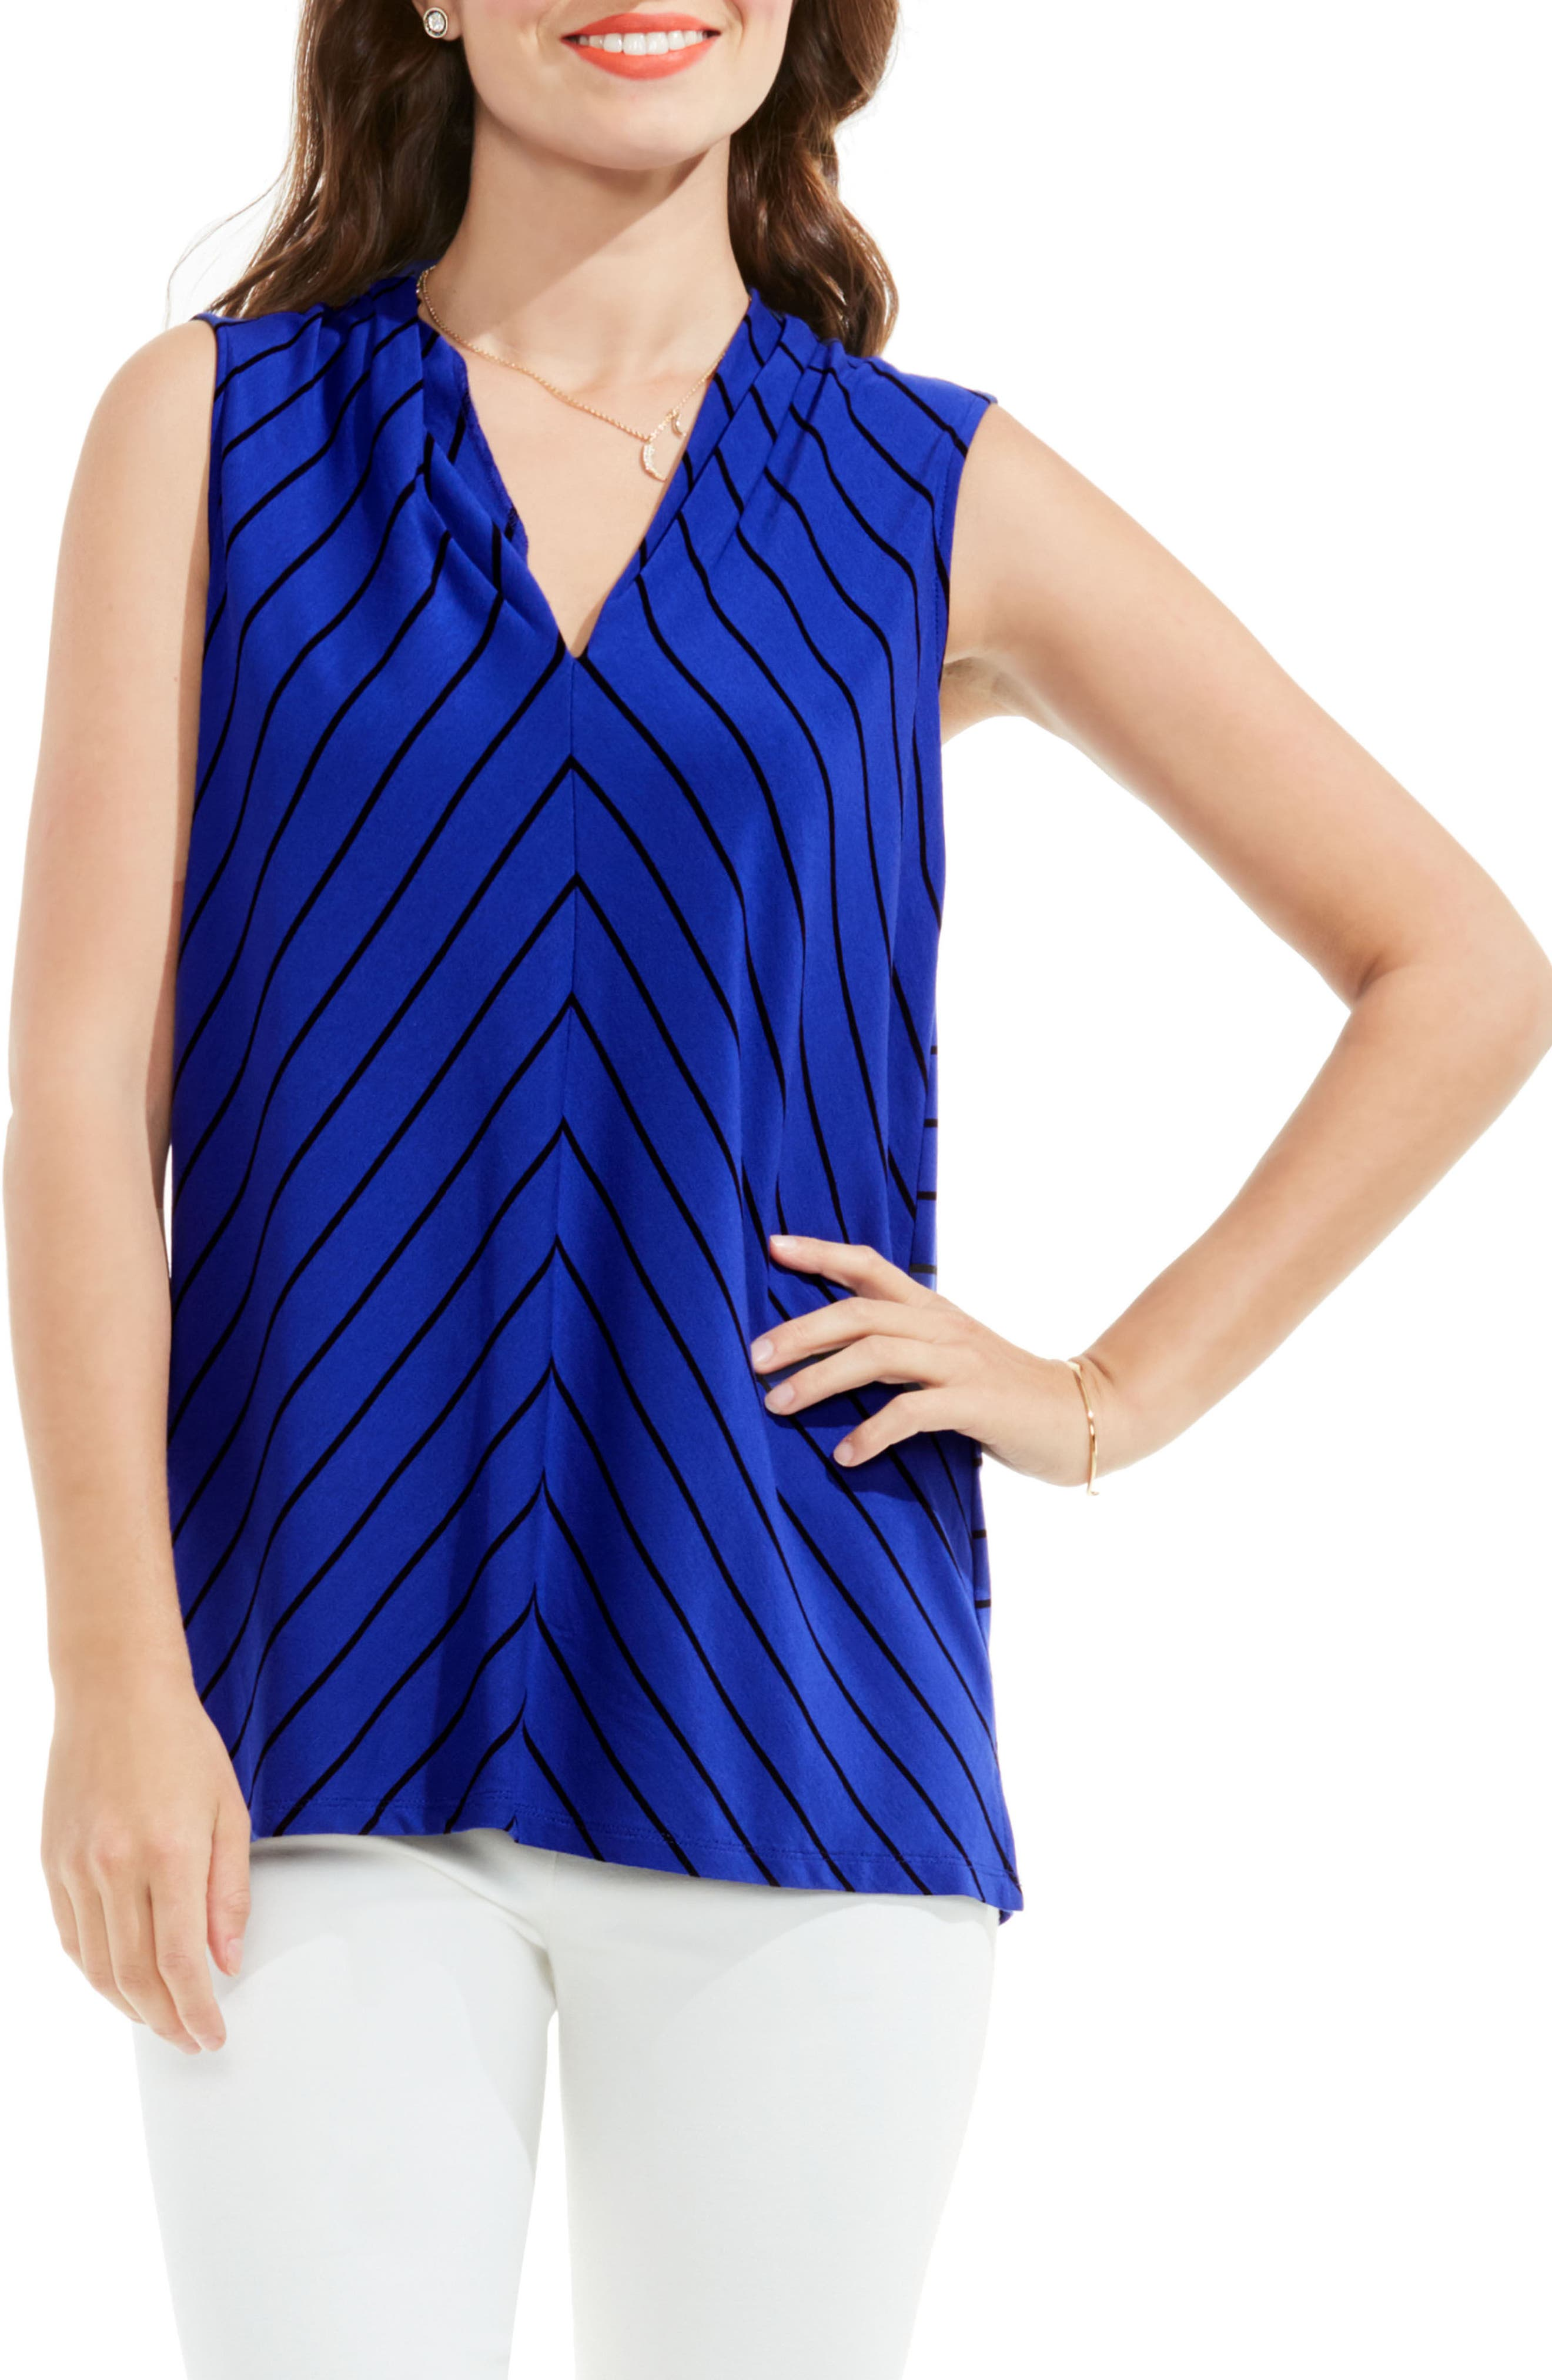 Vince Camuto Stripe Knit Top